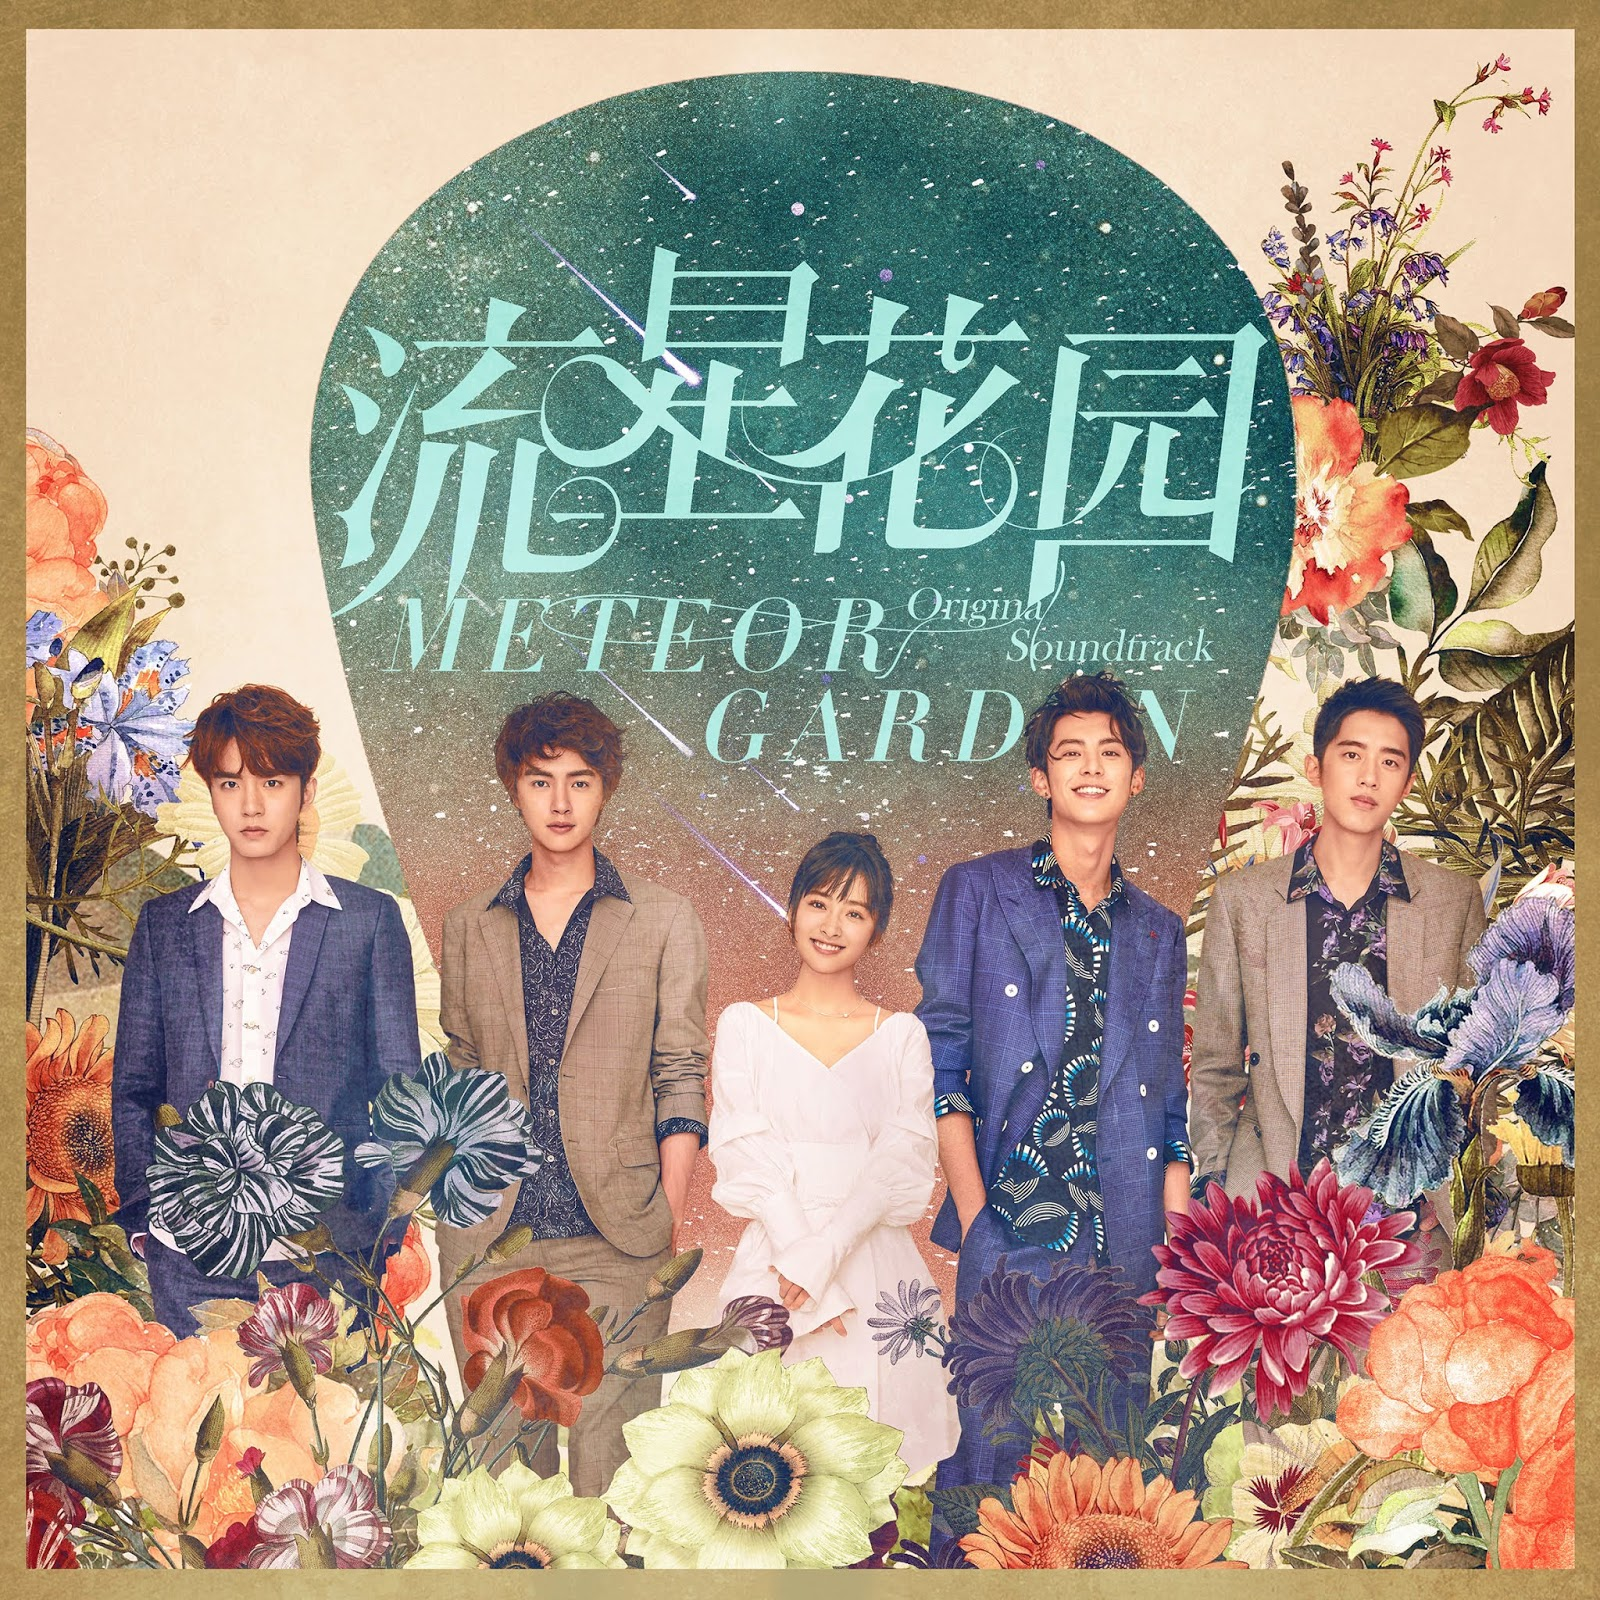 F4 - Never Would've Thought Of : Meteor Garden 2018 OST